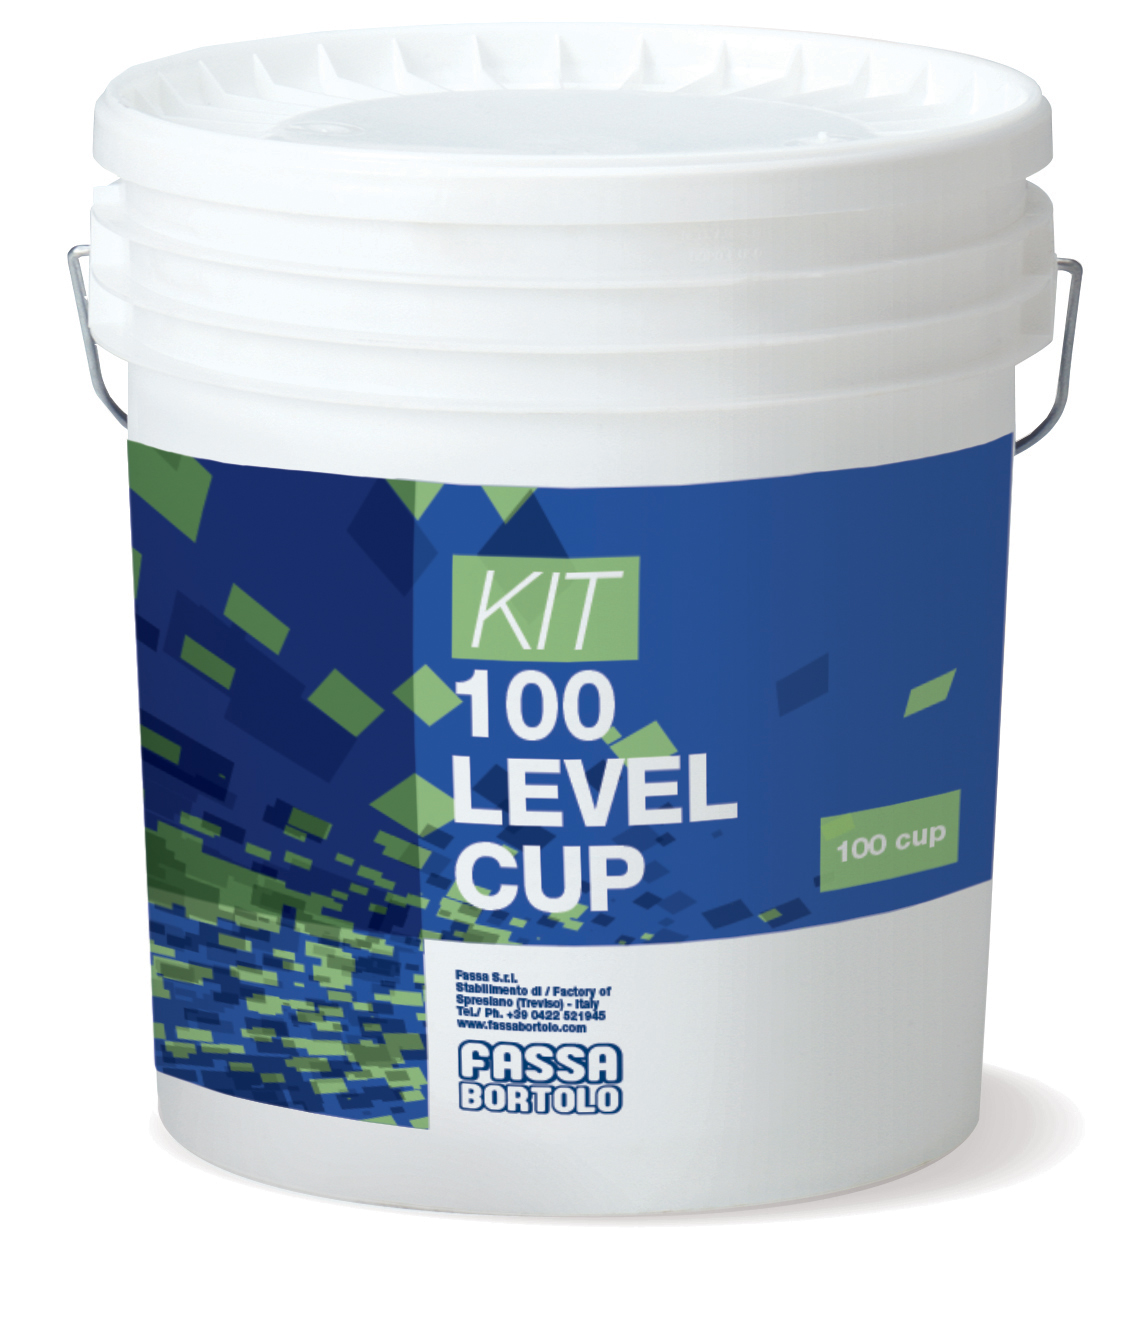 KIT 100 LEVEL CUP: Kit composto da 100 ricambi Cup